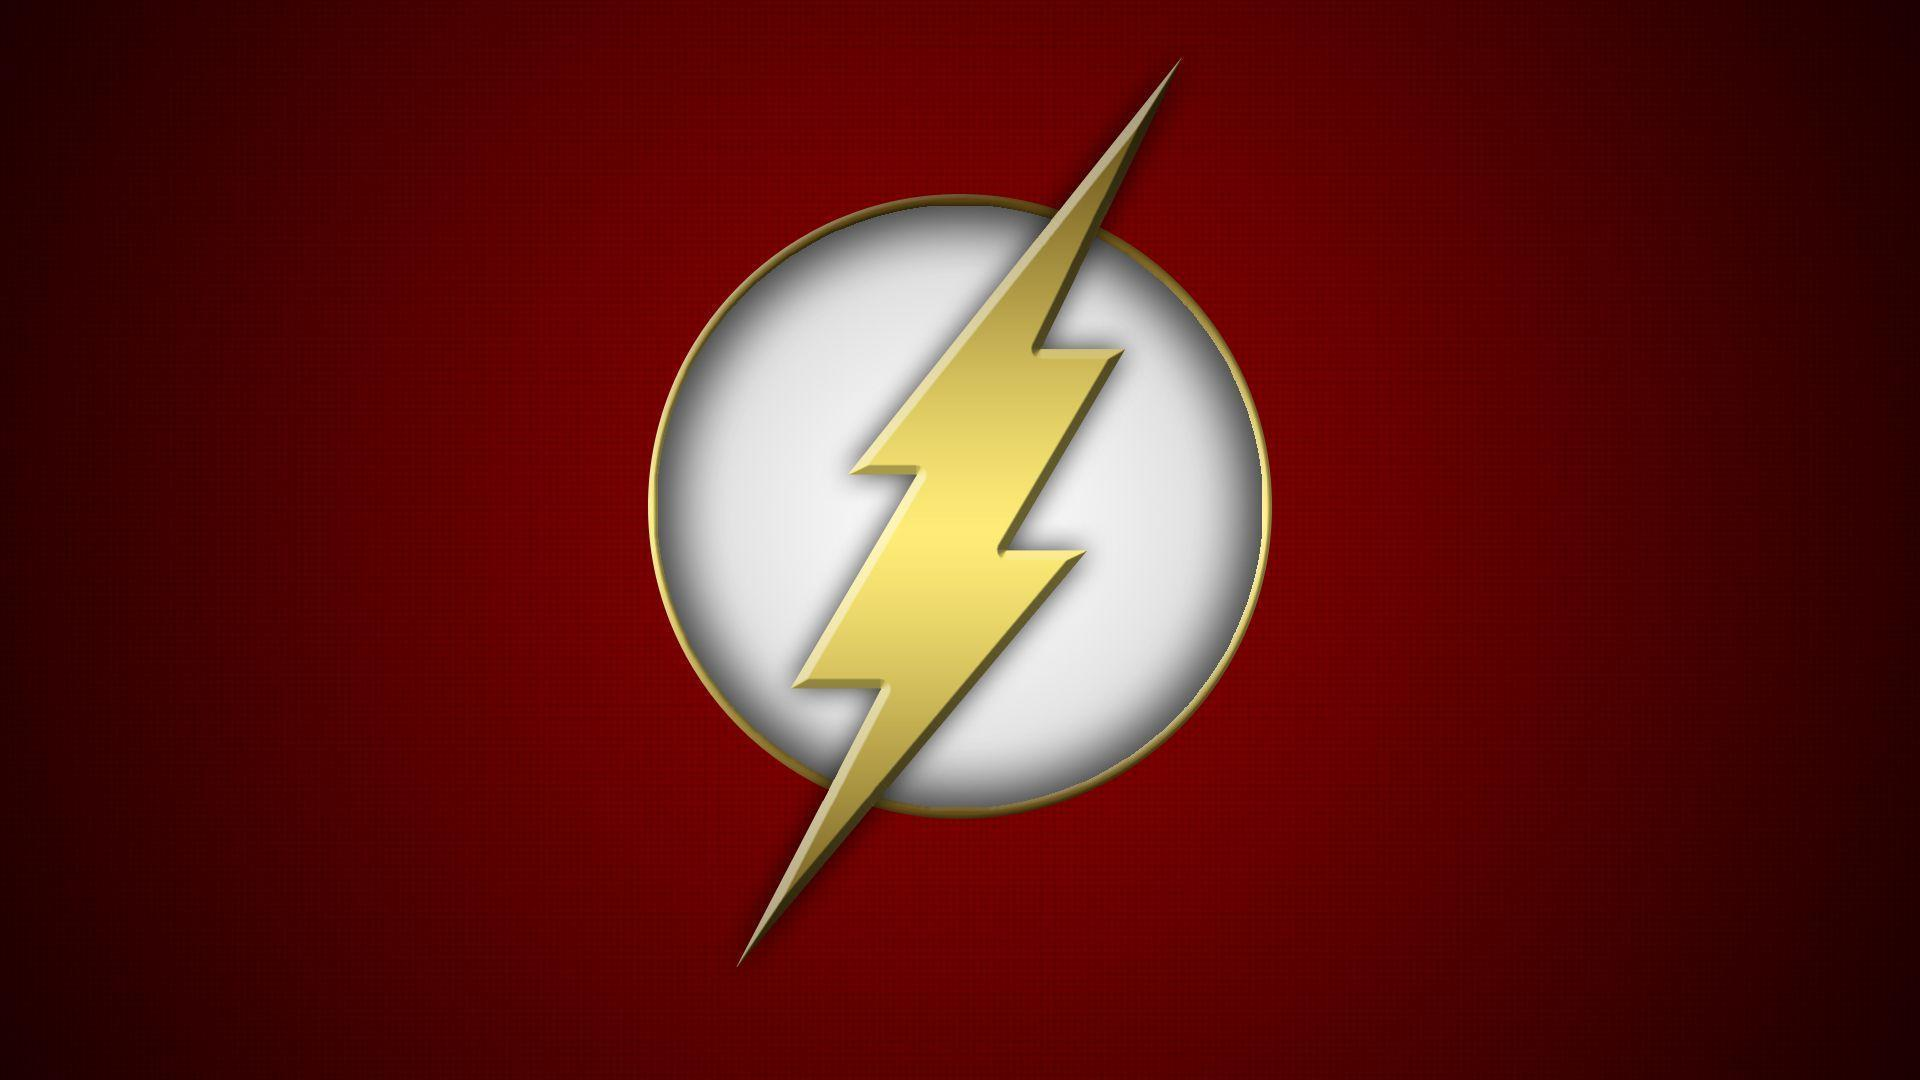 Flash Symbol Wallpaper